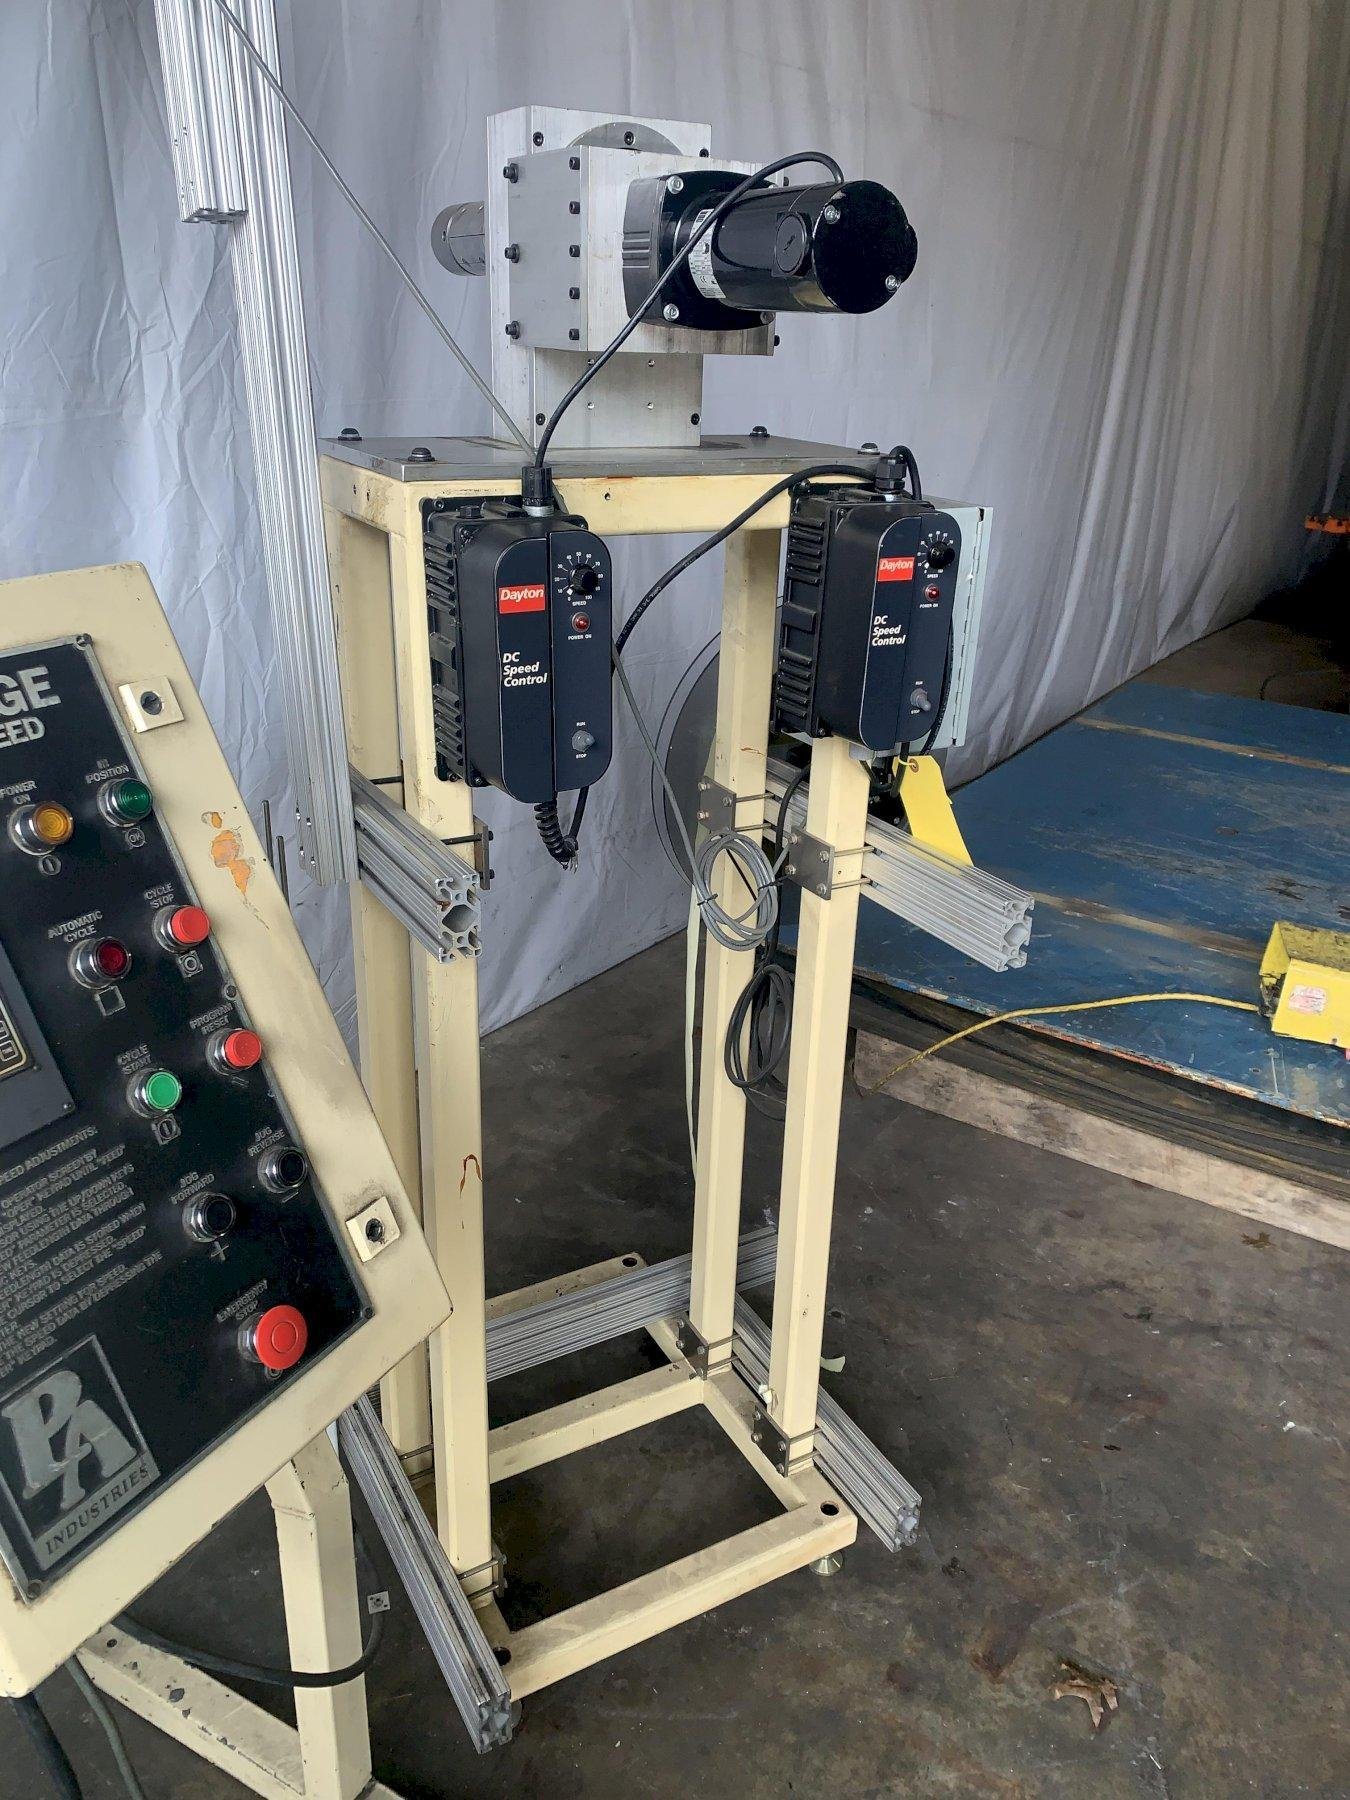 2 SPINDLE MOTORIZED TAPE UNCOILER REEL: STOCK 10715